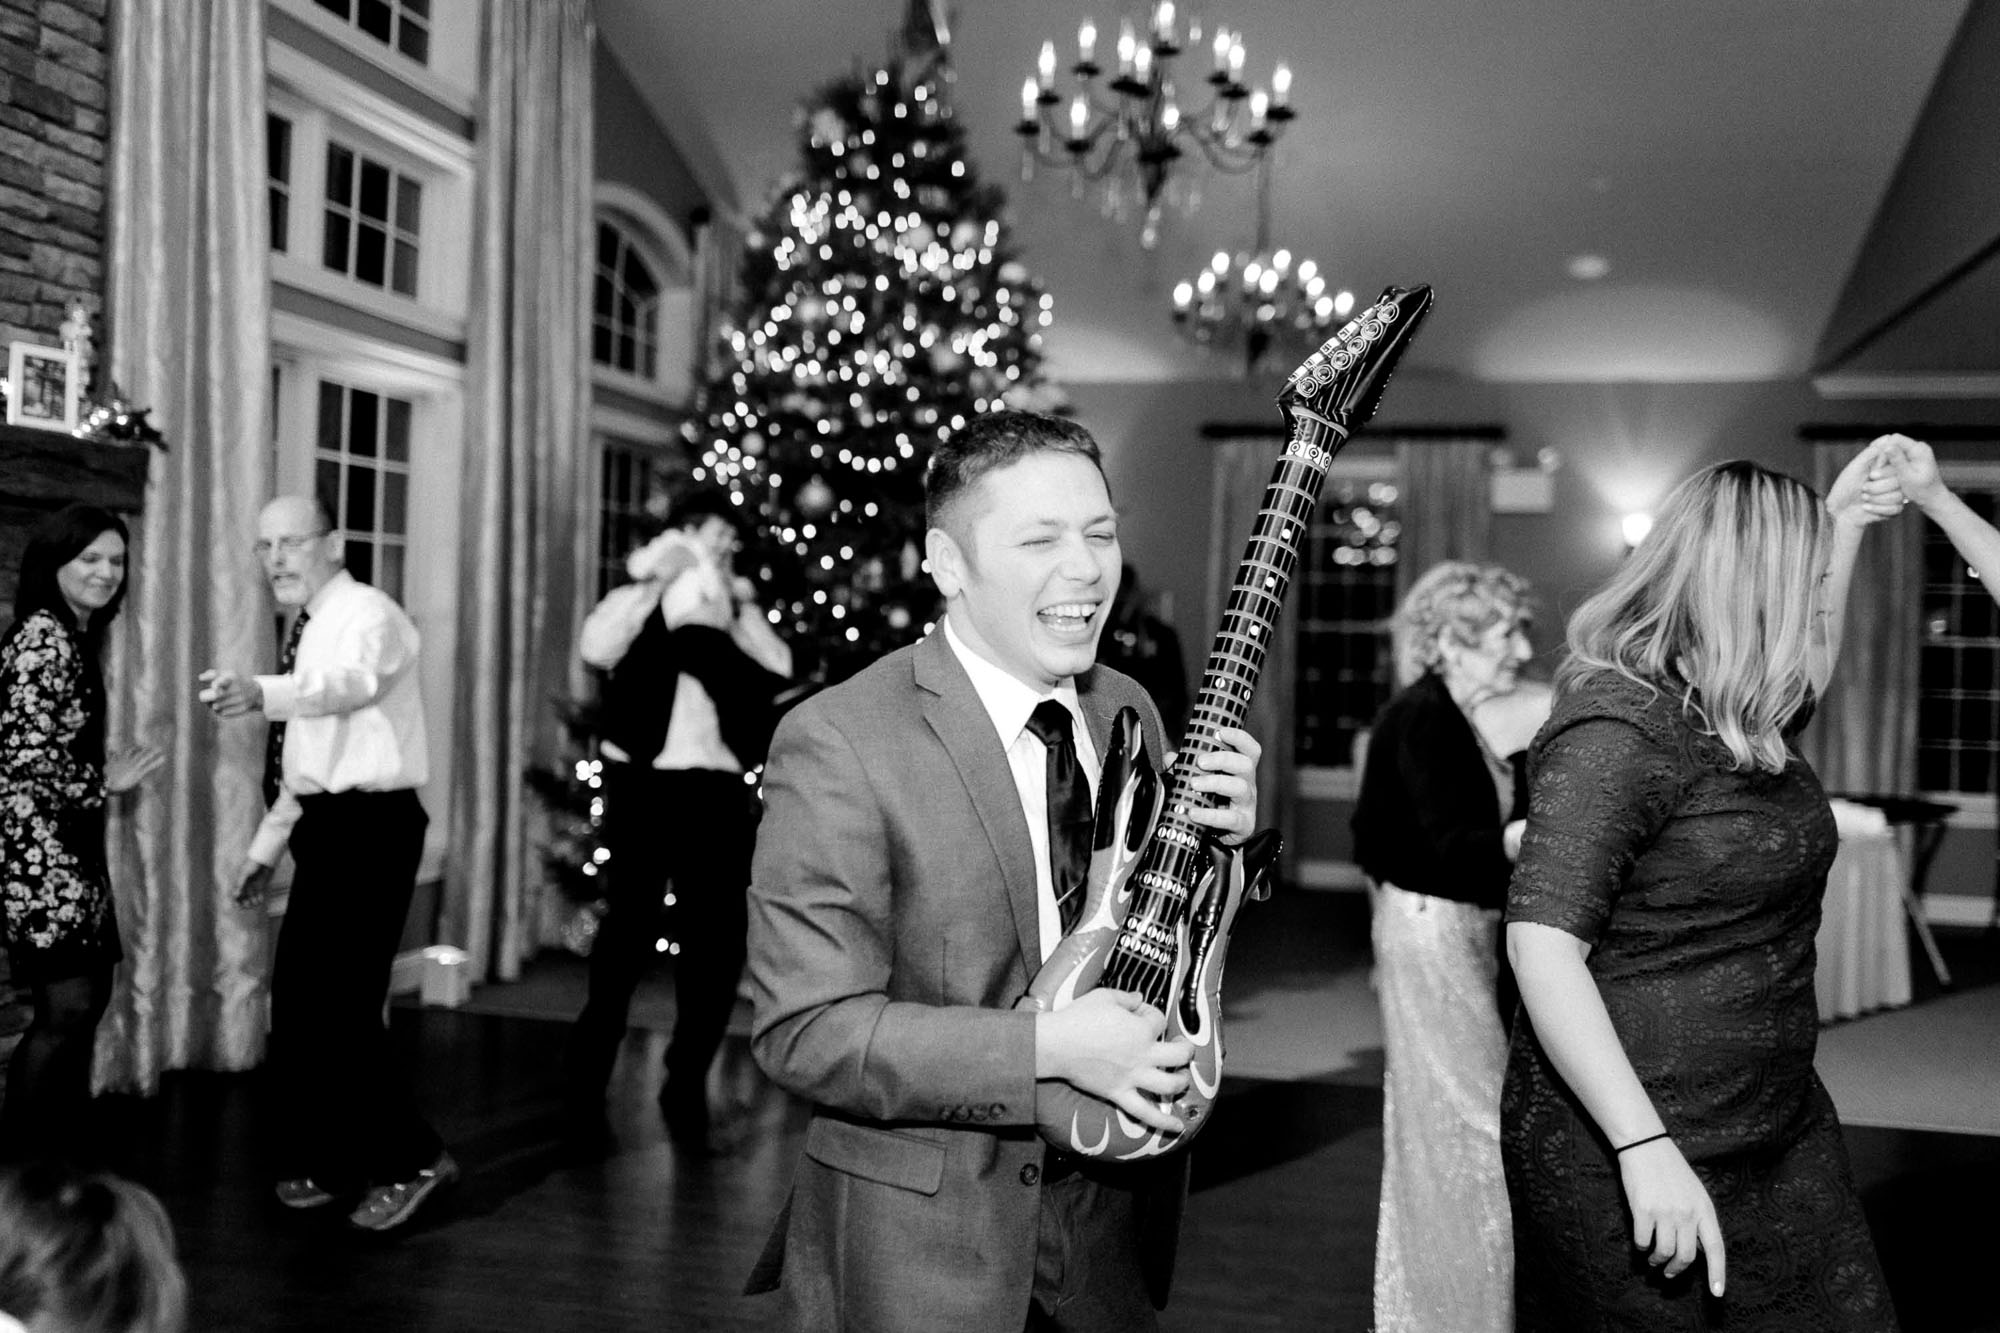 snowy-sand-springs-country-club-drums-pa-christmas-wedding-35110.jpg